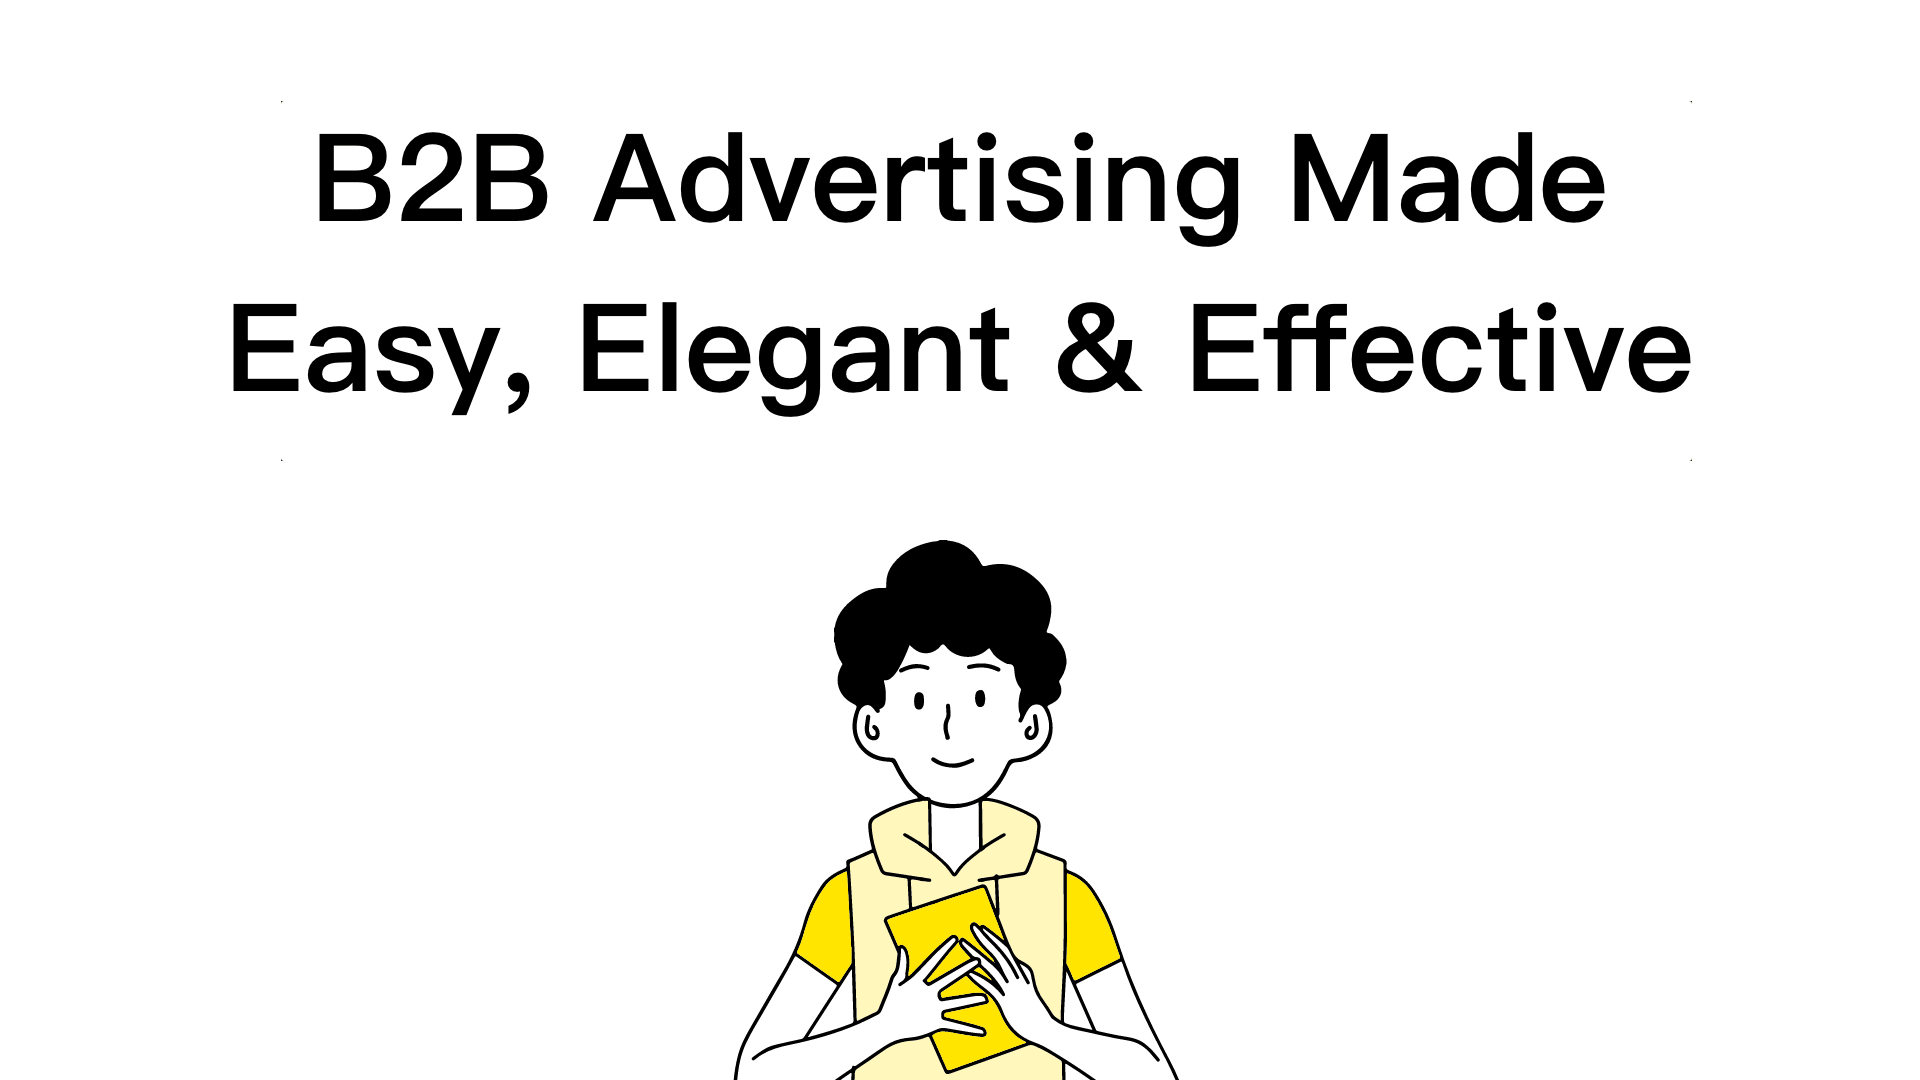 Online ads made easy